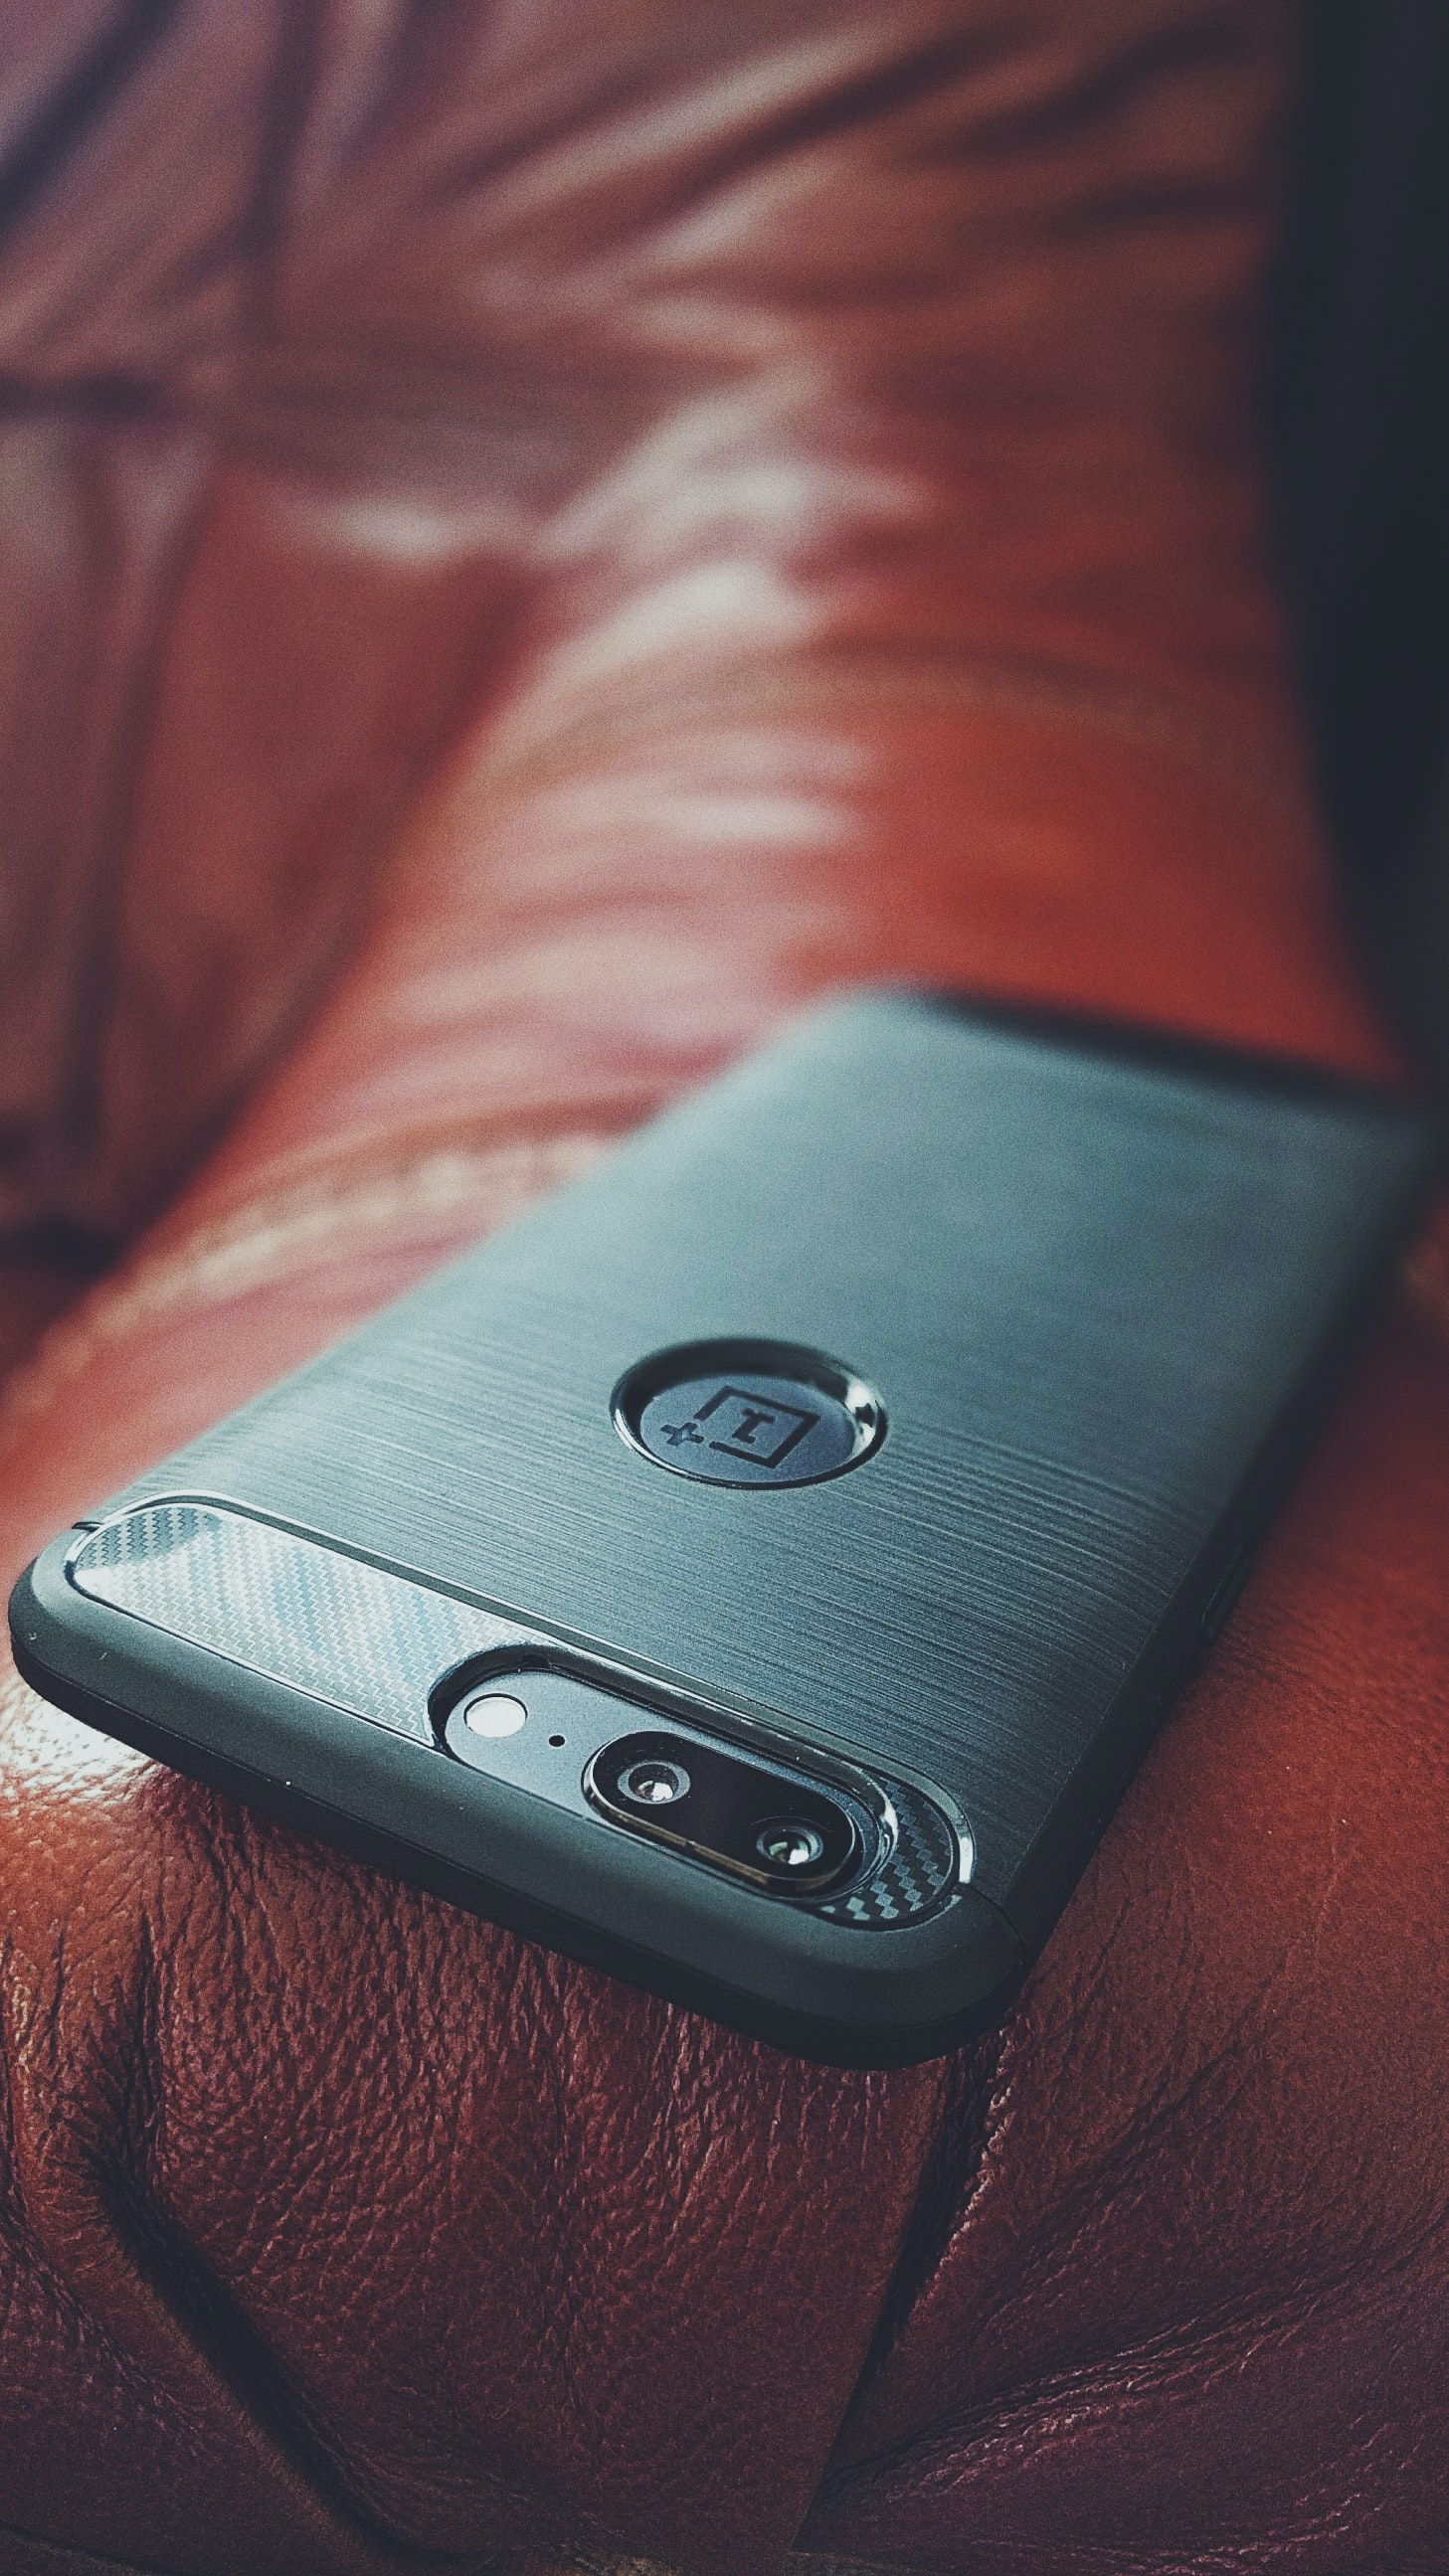 A smartphone sitting on the arm of a leather couch.